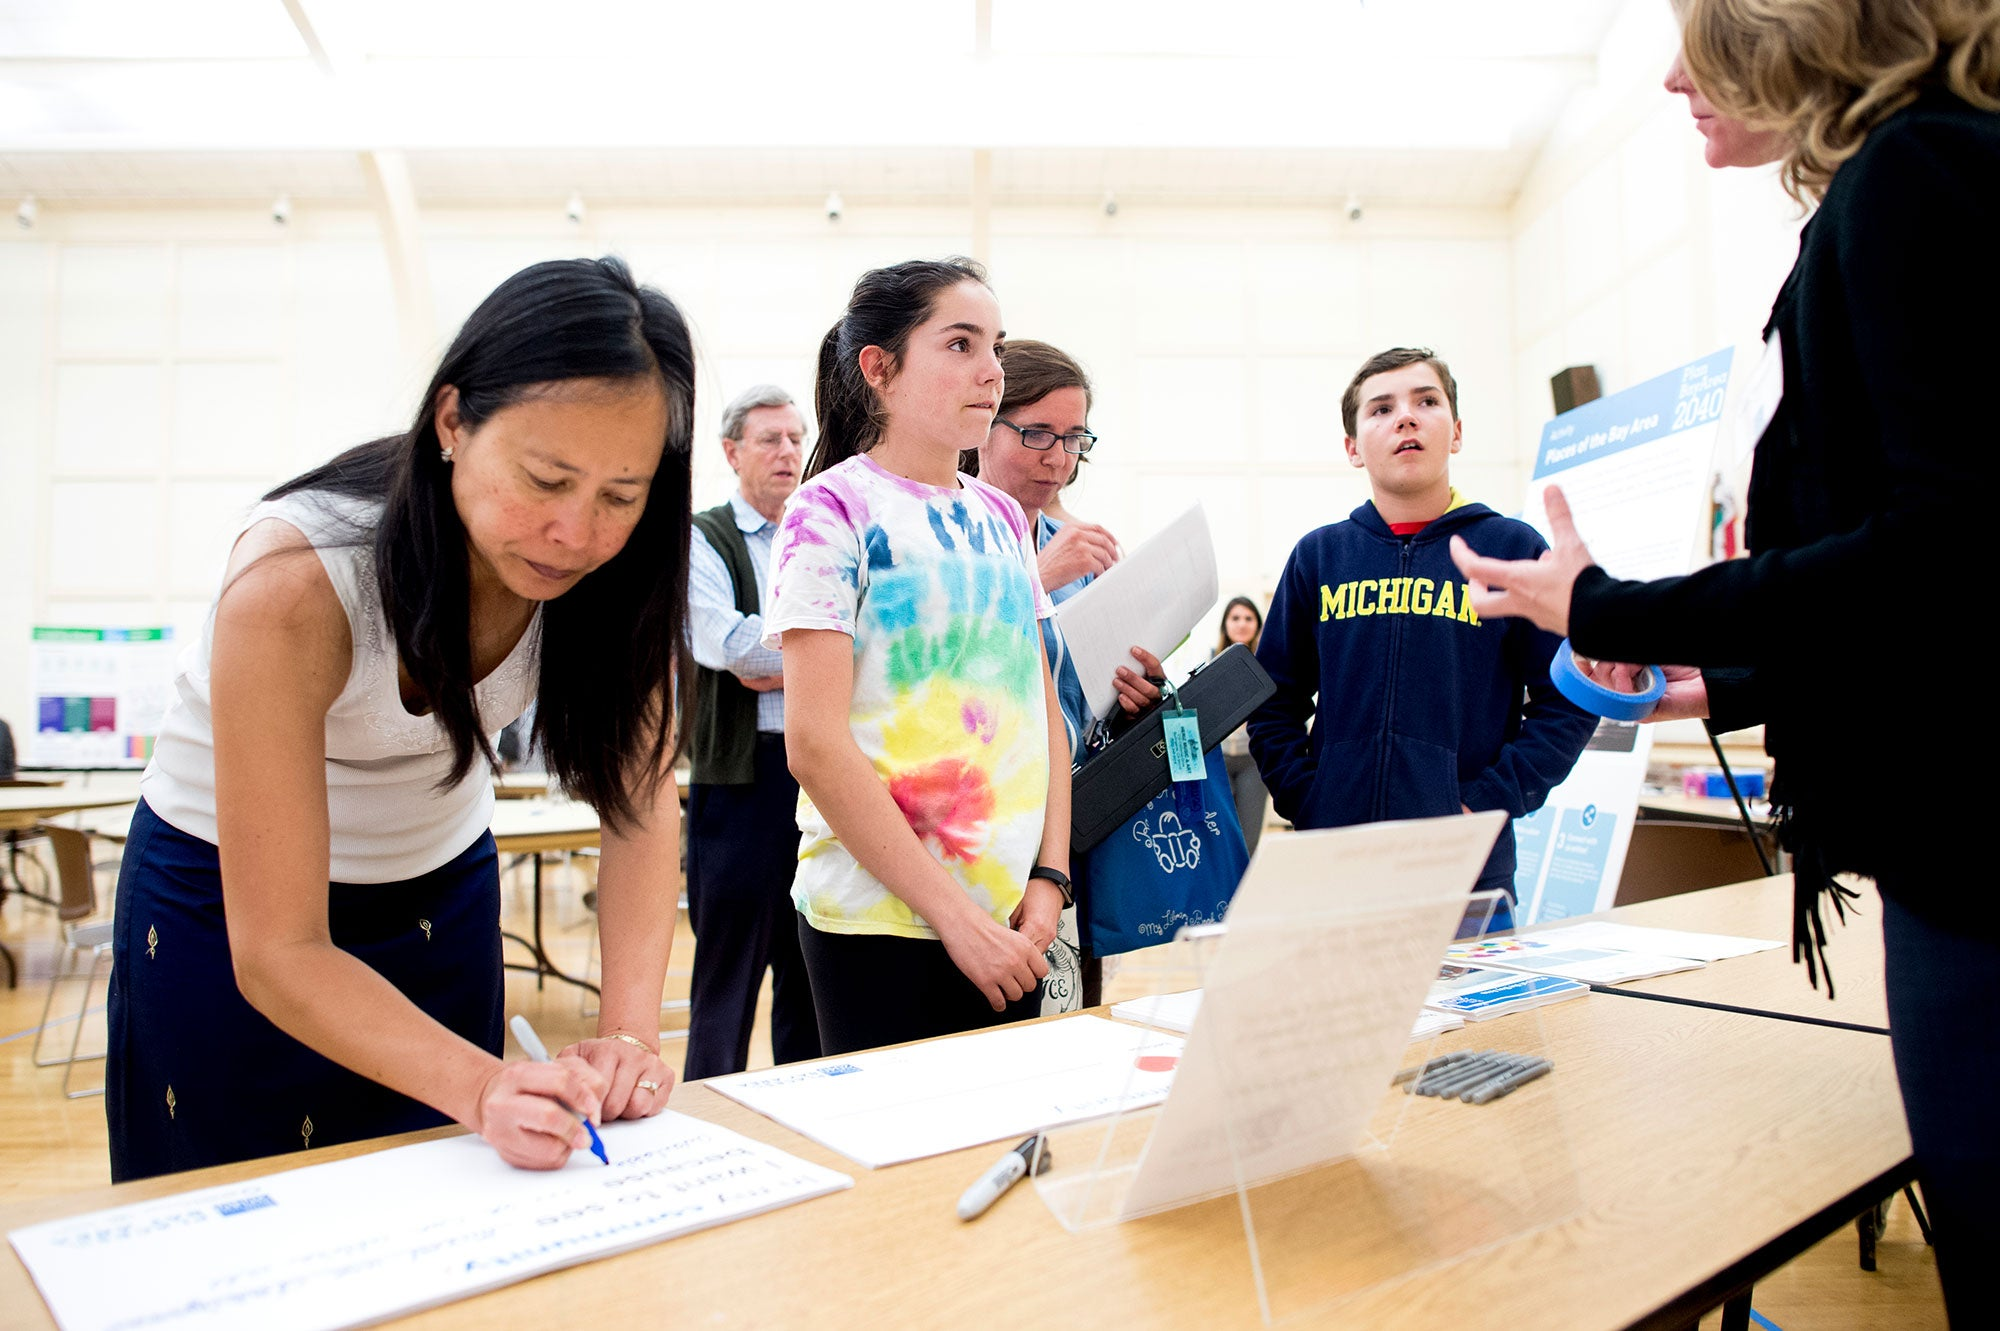 A woman fills out a comment form while children discuss Plan Bay Area 2040 with staff at the Spring 2016 San Mateo County open house in Burlingame.